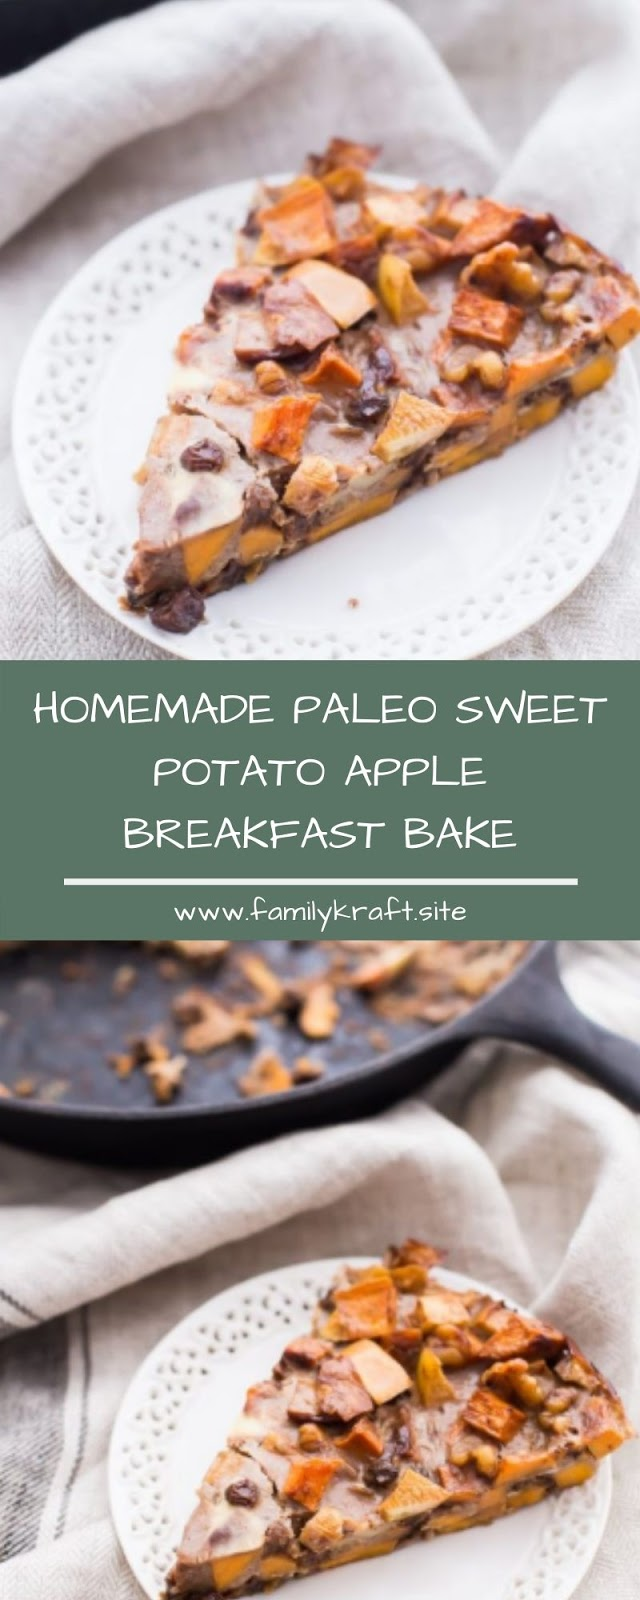 HOMEMADE PALEO SWEET POTATO APPLE BREAKFAST BAKE